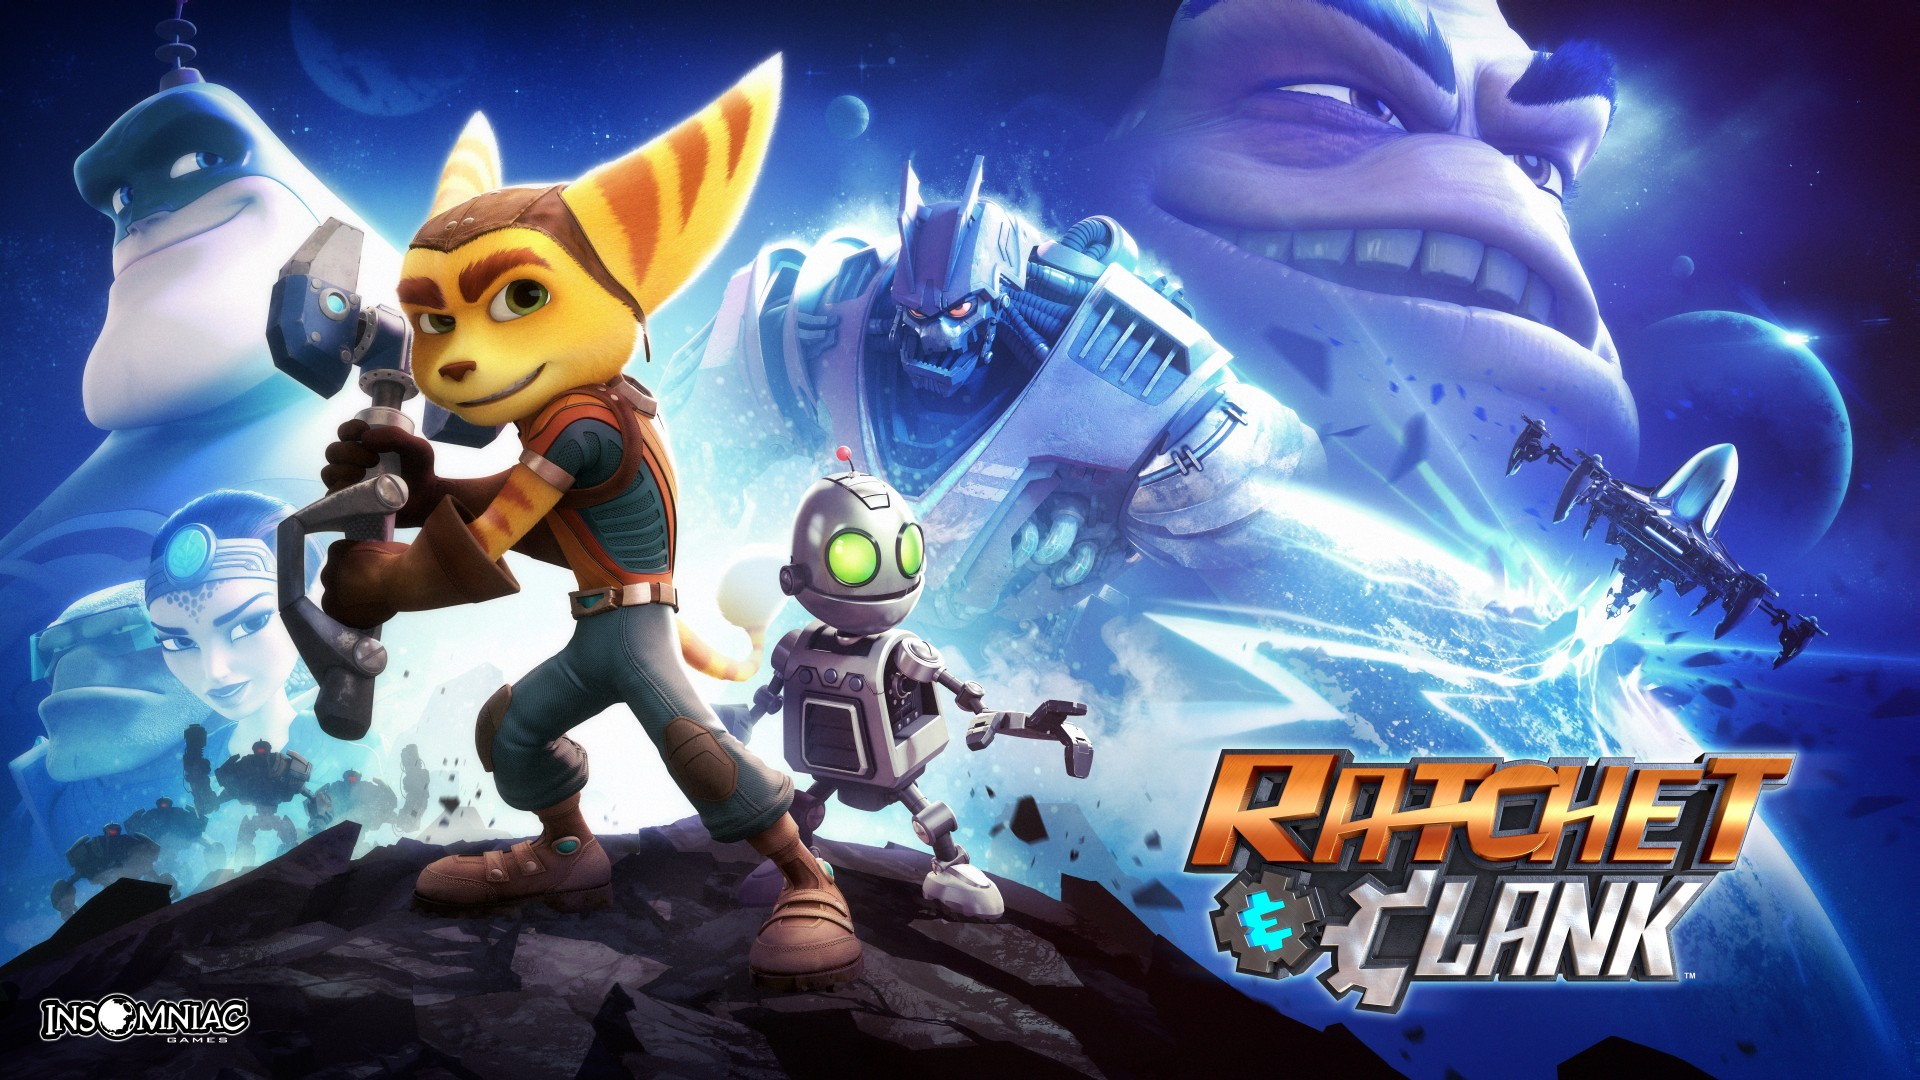 Ratchet & Clank PS4 Poster